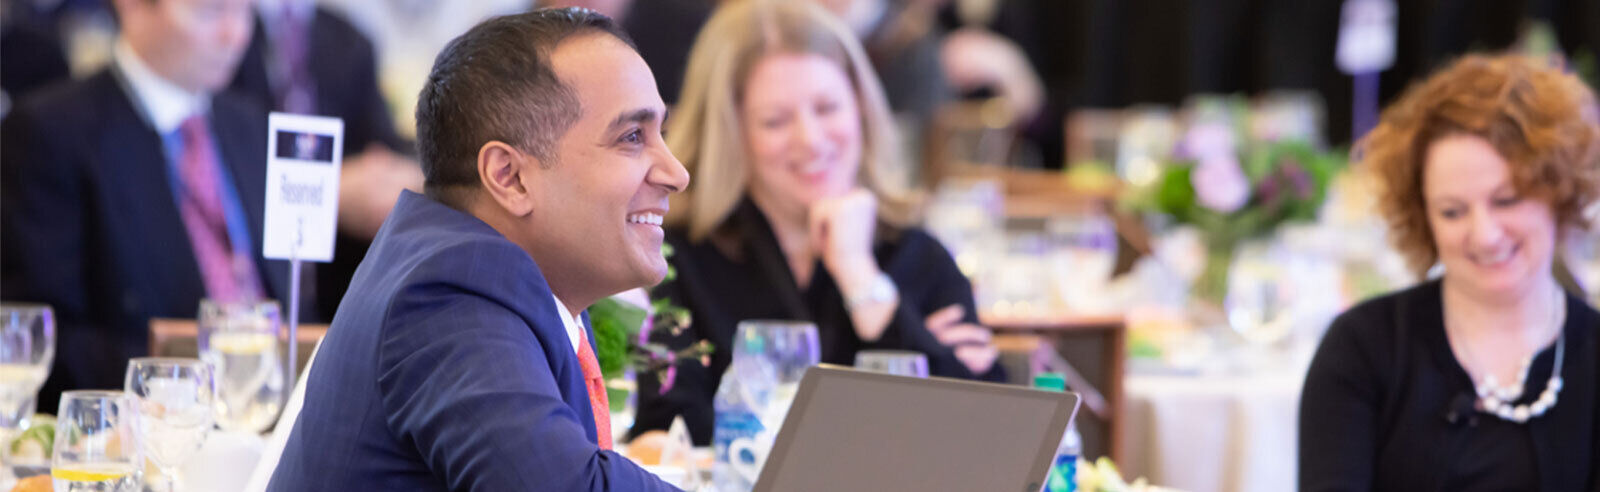 Harvard alumnus Sachin H. Jain is seated with other speakers at the 2019 Fusion symposium. Image credit Russ Campbell.